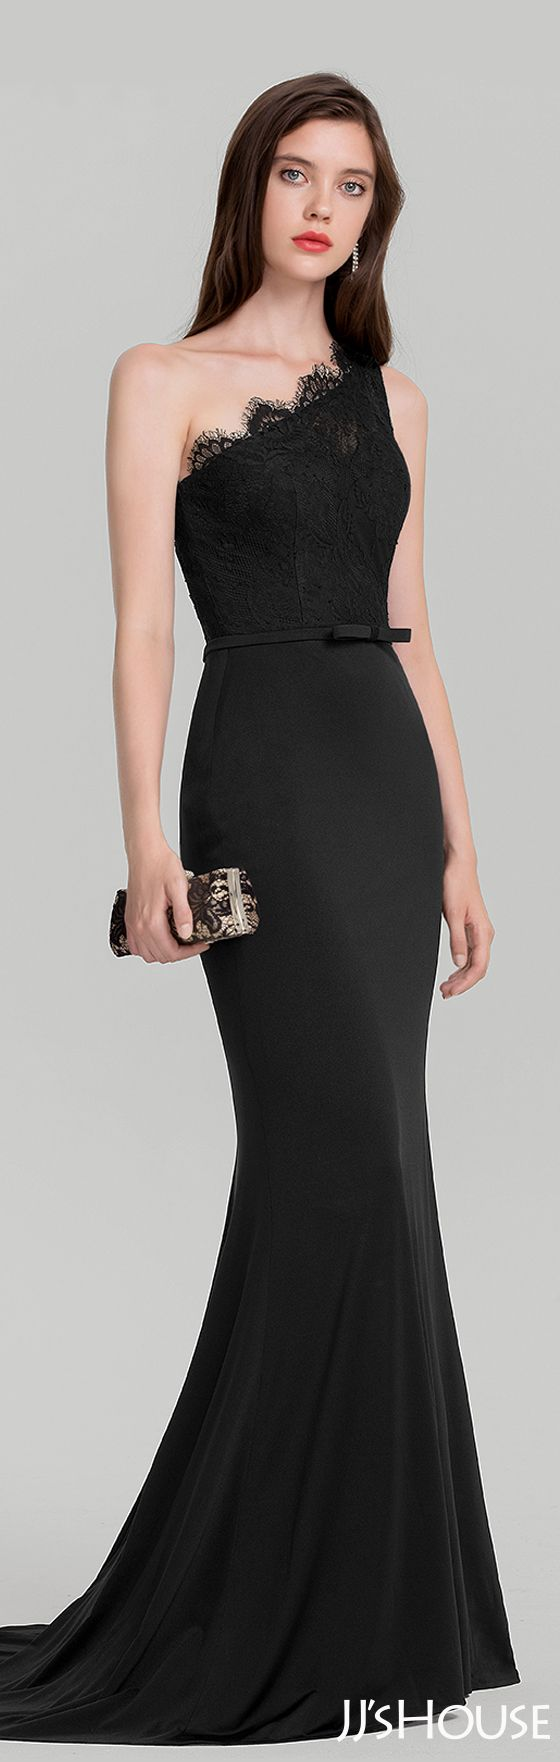 One of the must-have evening dresses! #JJsHouse #Evening